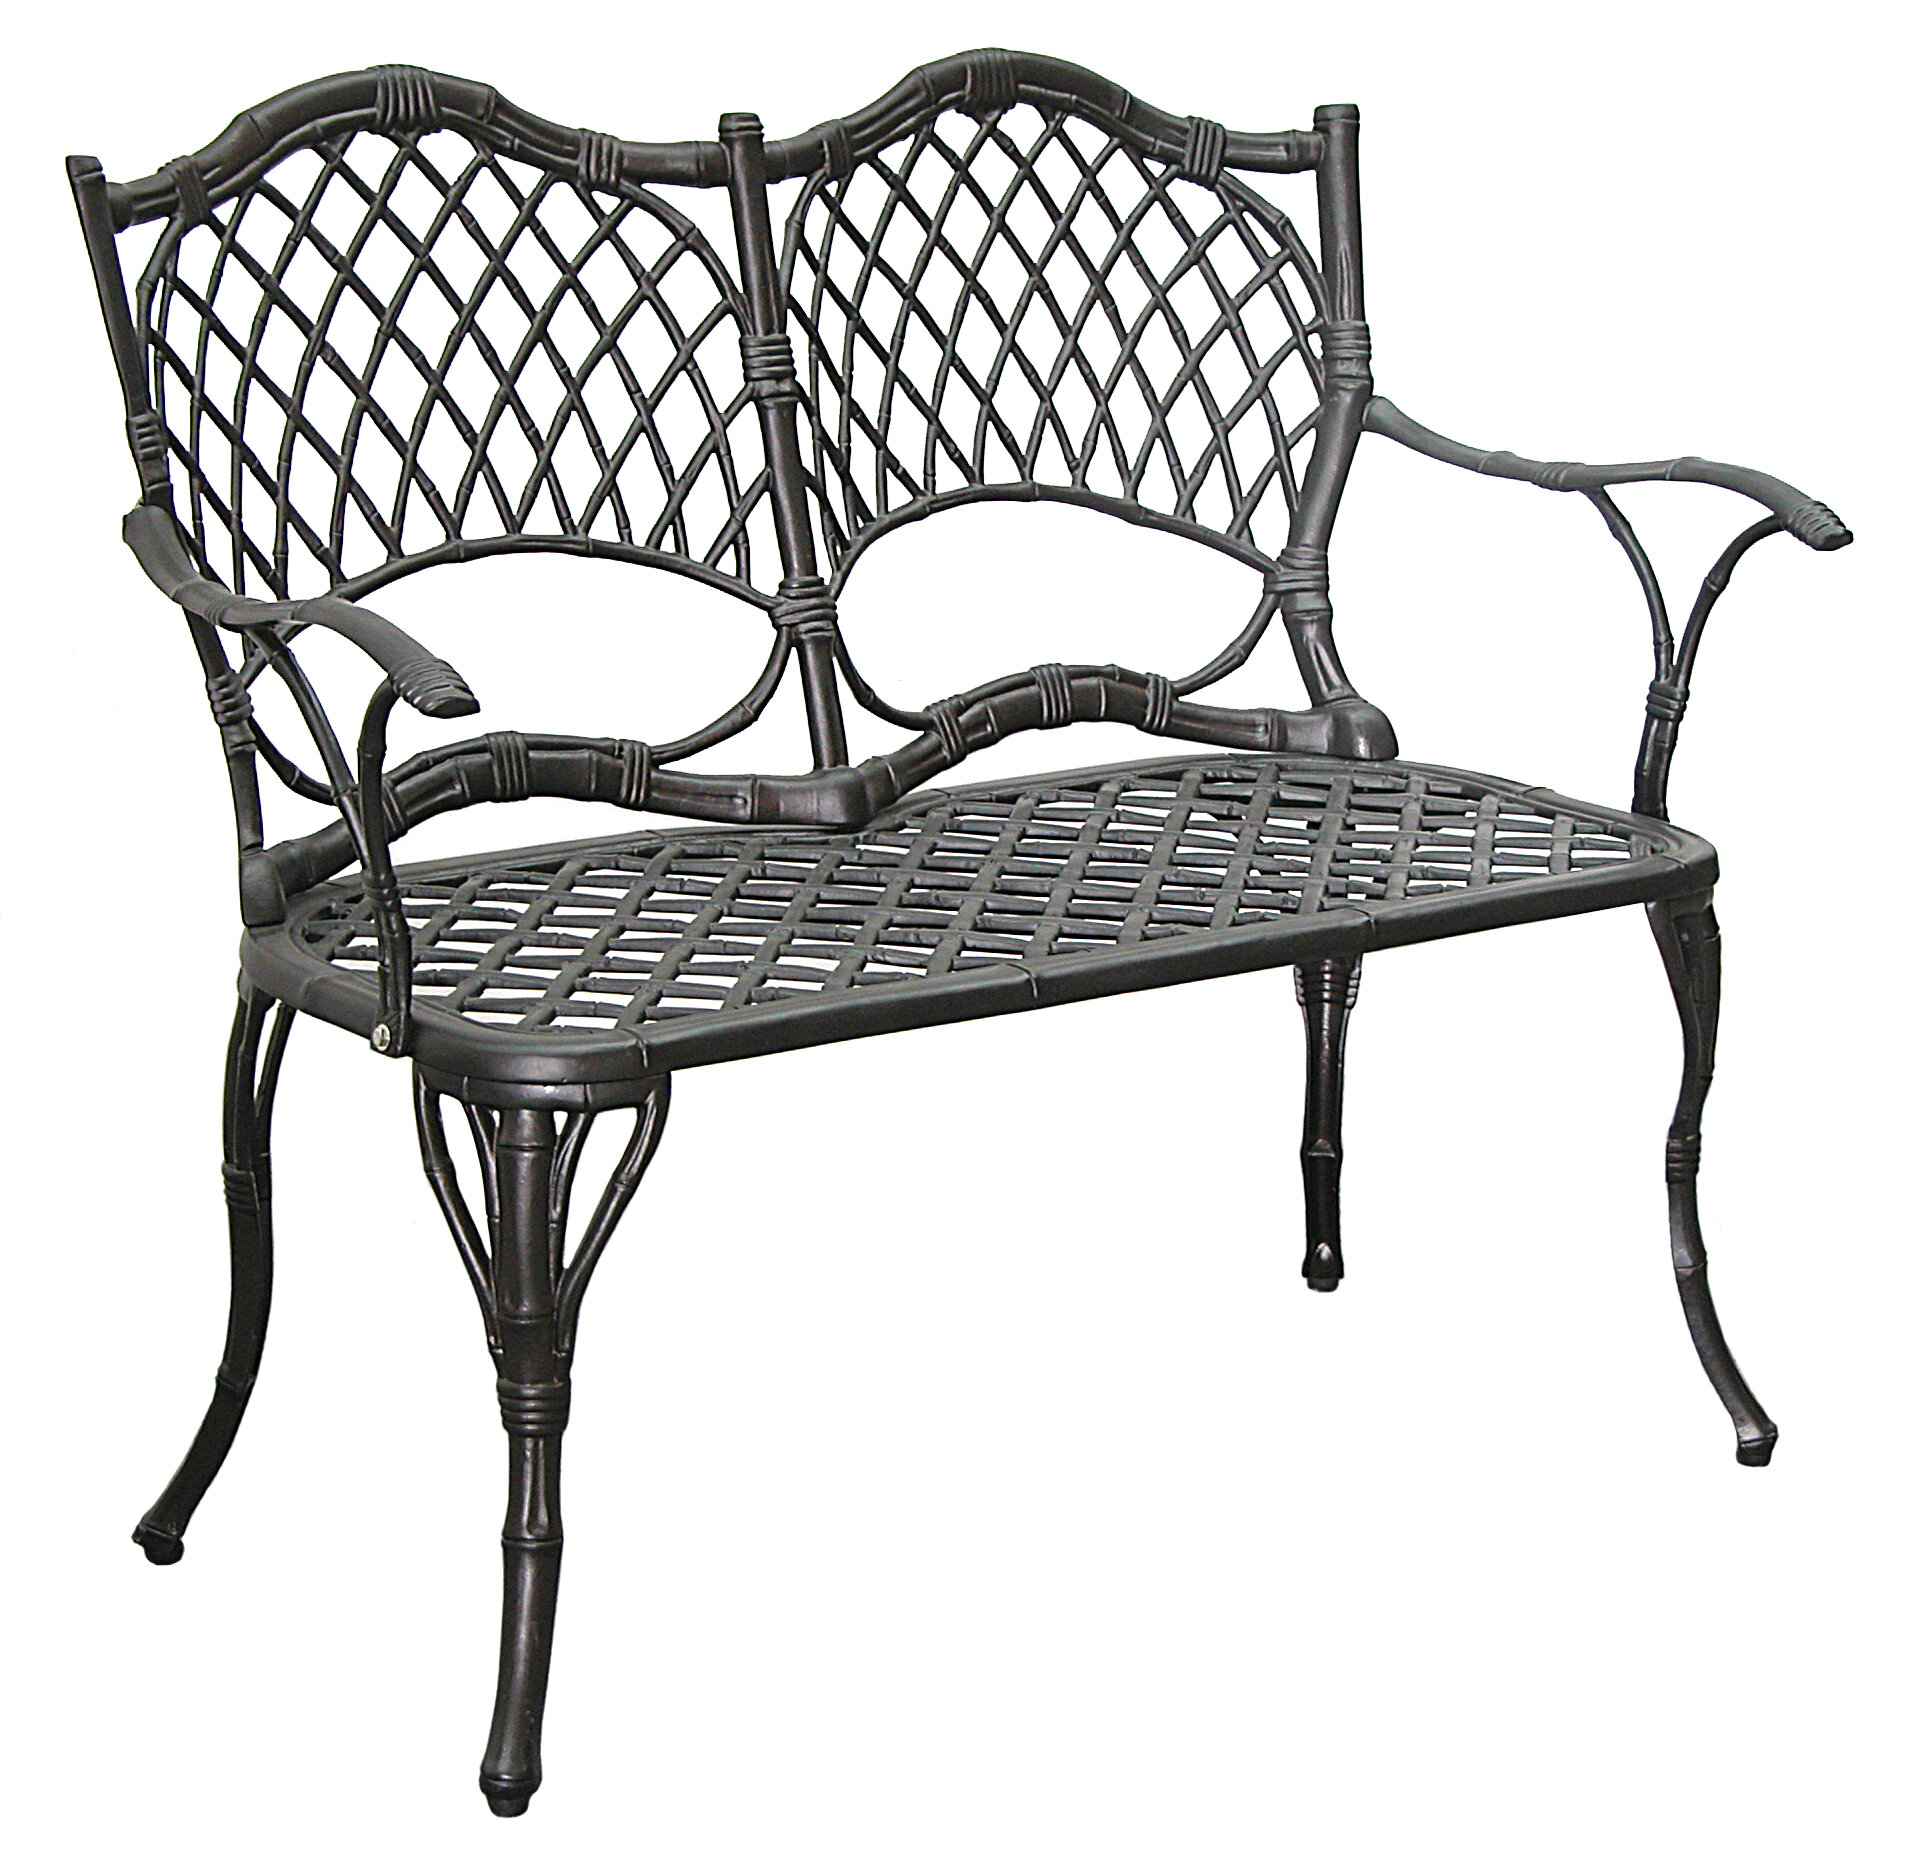 new powder seat steel garden chair furniture white patio outdoor bench itm frame coated